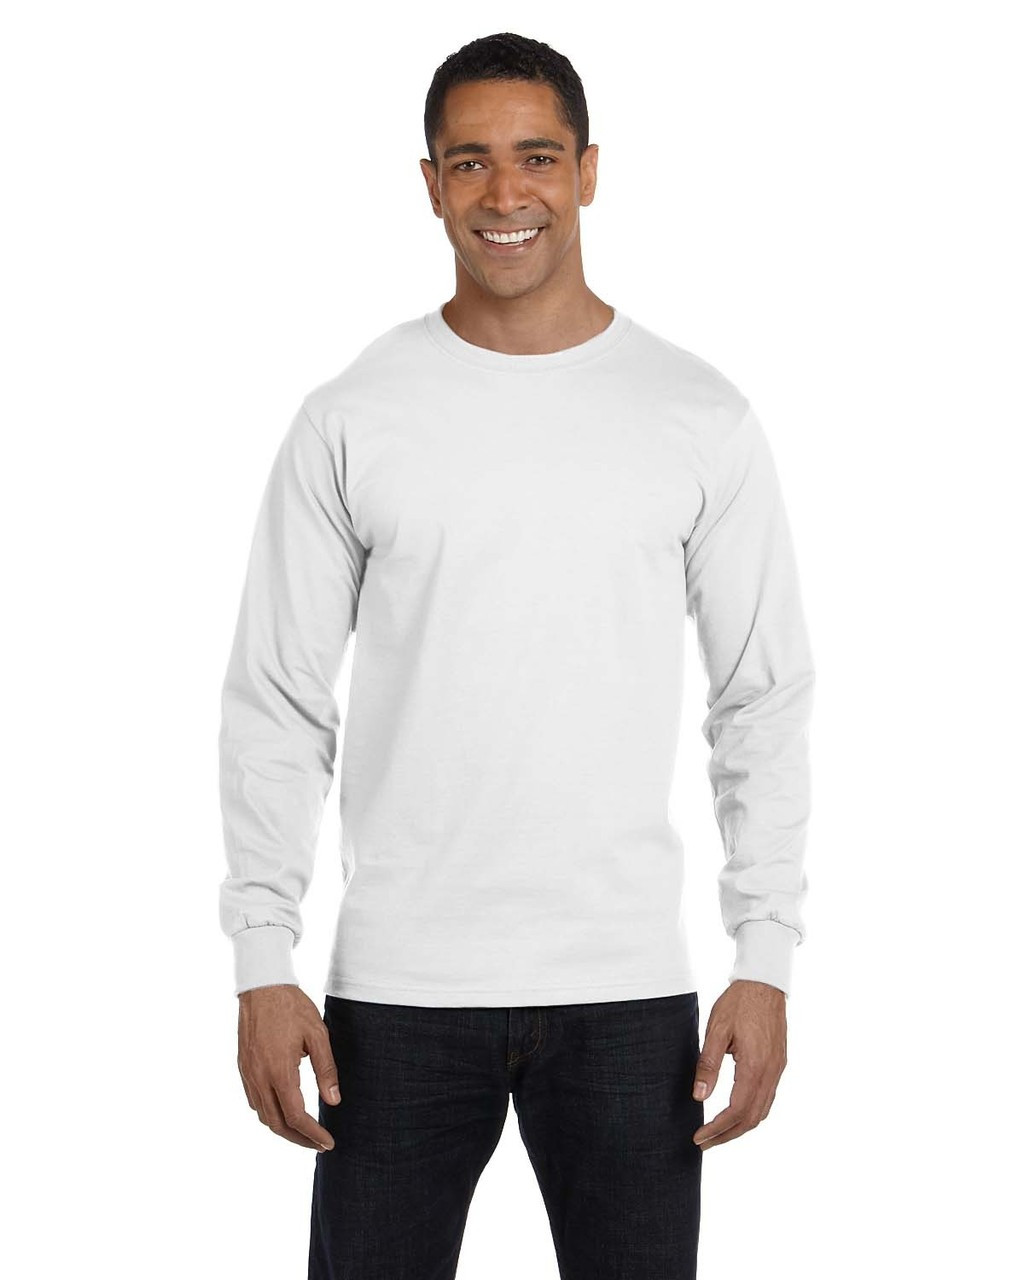 White - G840 Gildan DryBlend 50/50 Long Sleeve T-Shirt | Blankclothing.ca